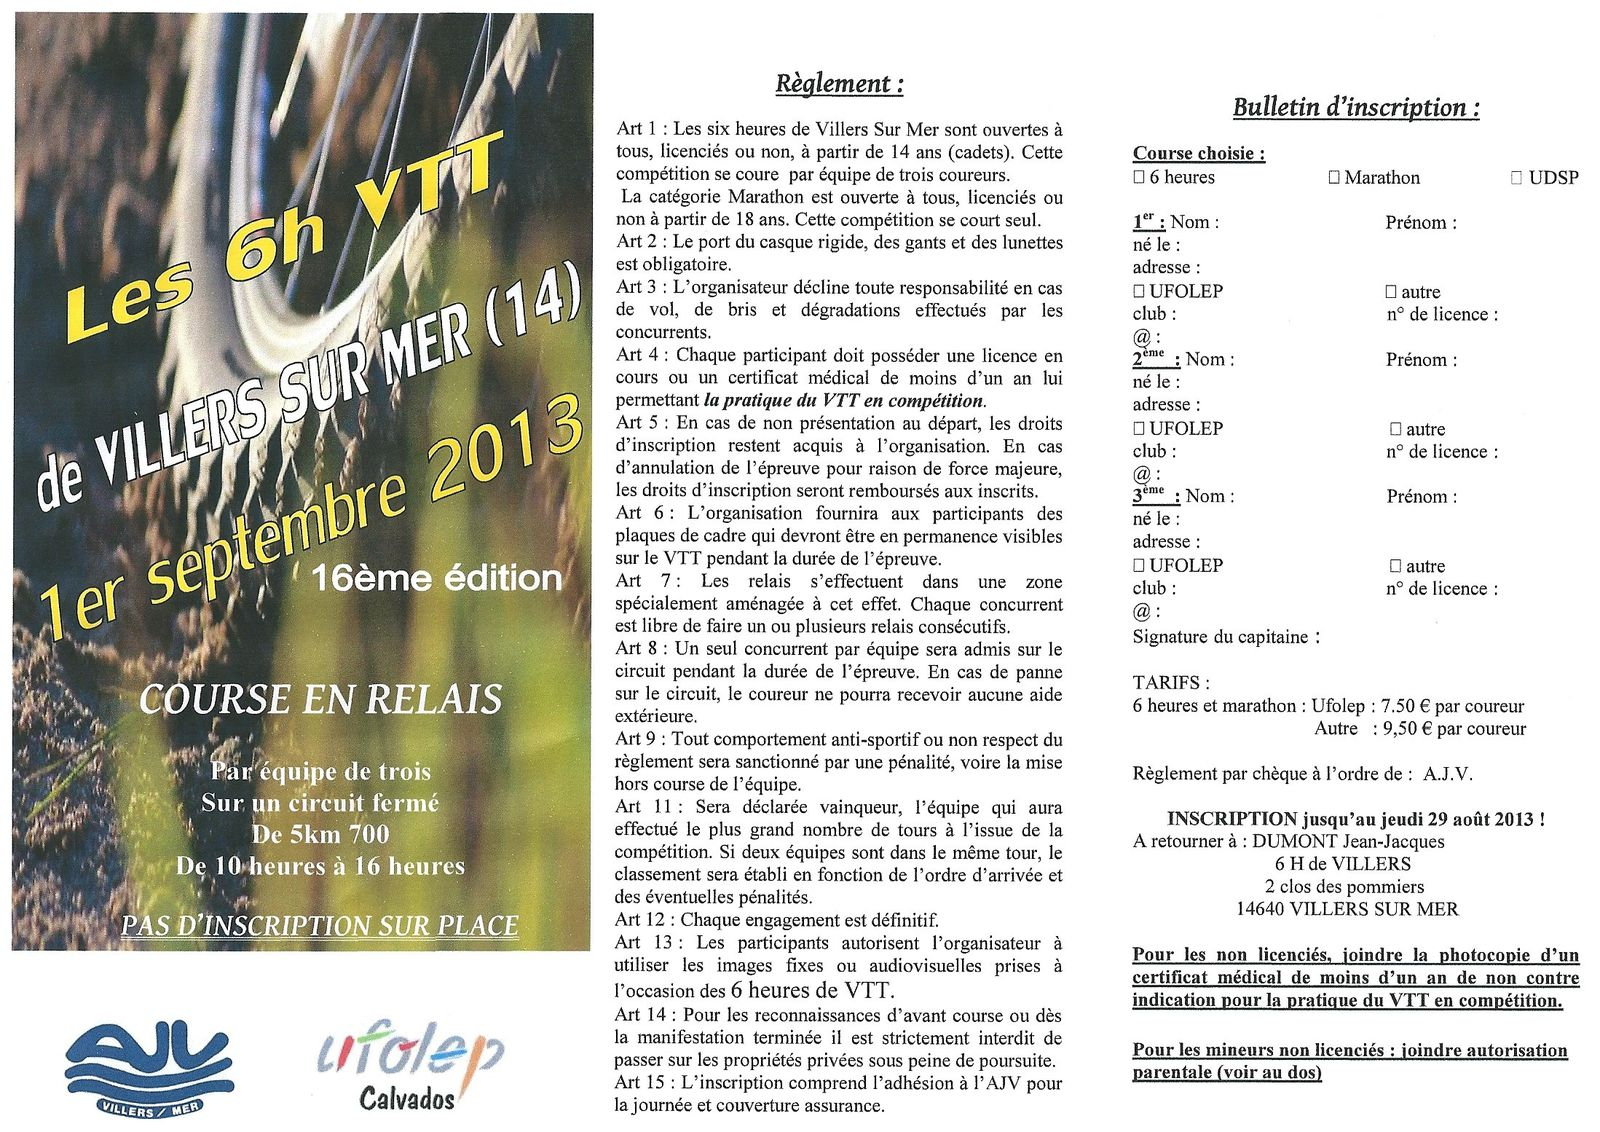 inscription6h2013 1